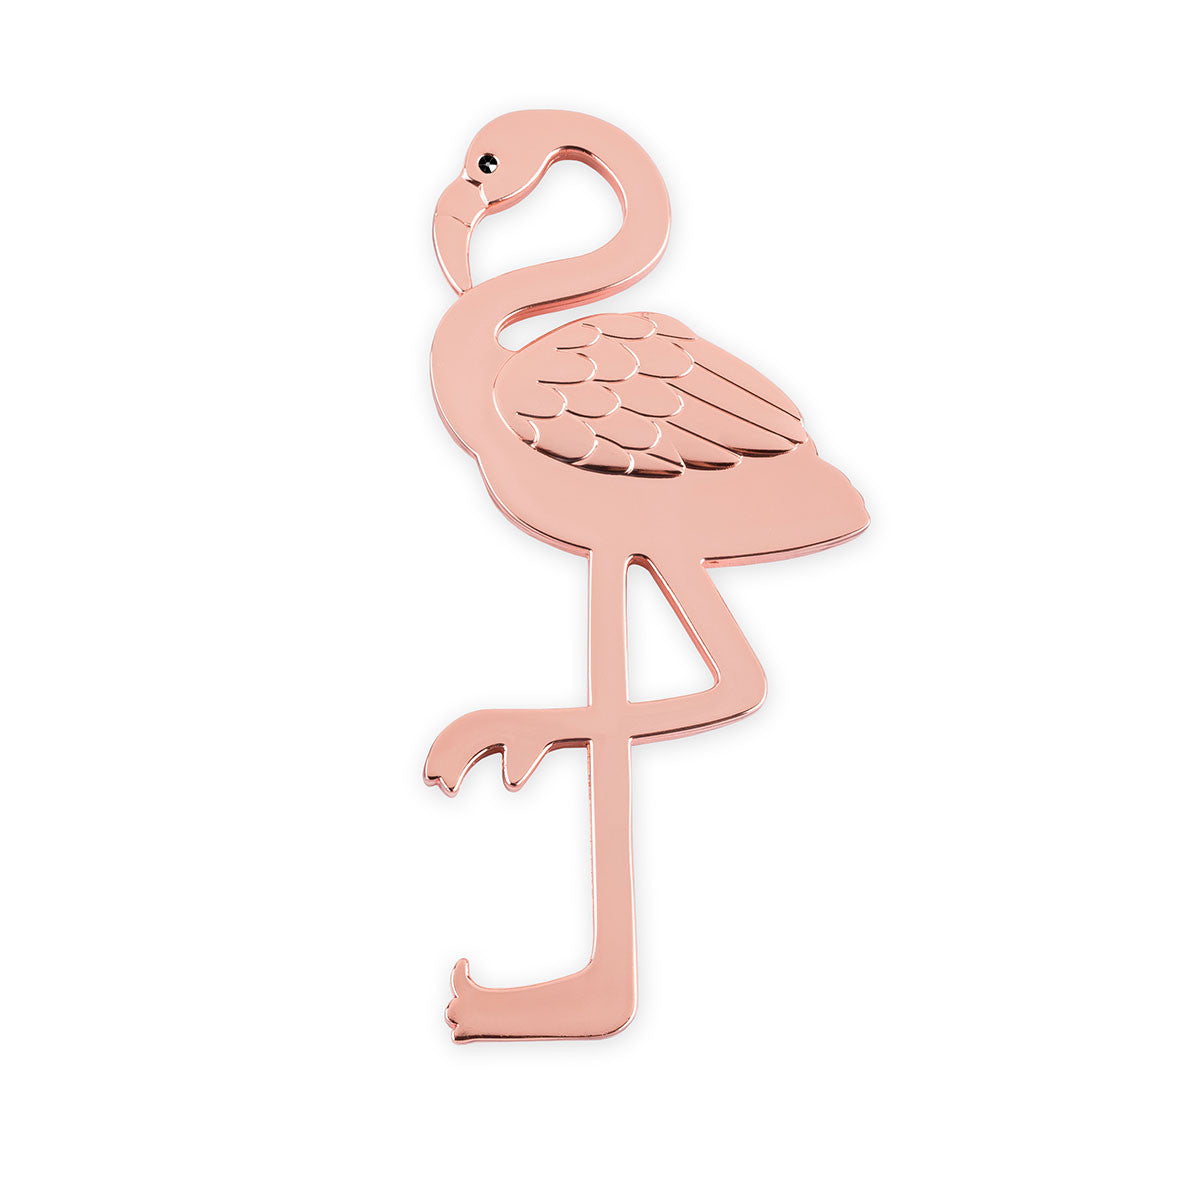 Flamingo Bottle Opener | UBERSTAR - Only £6.99